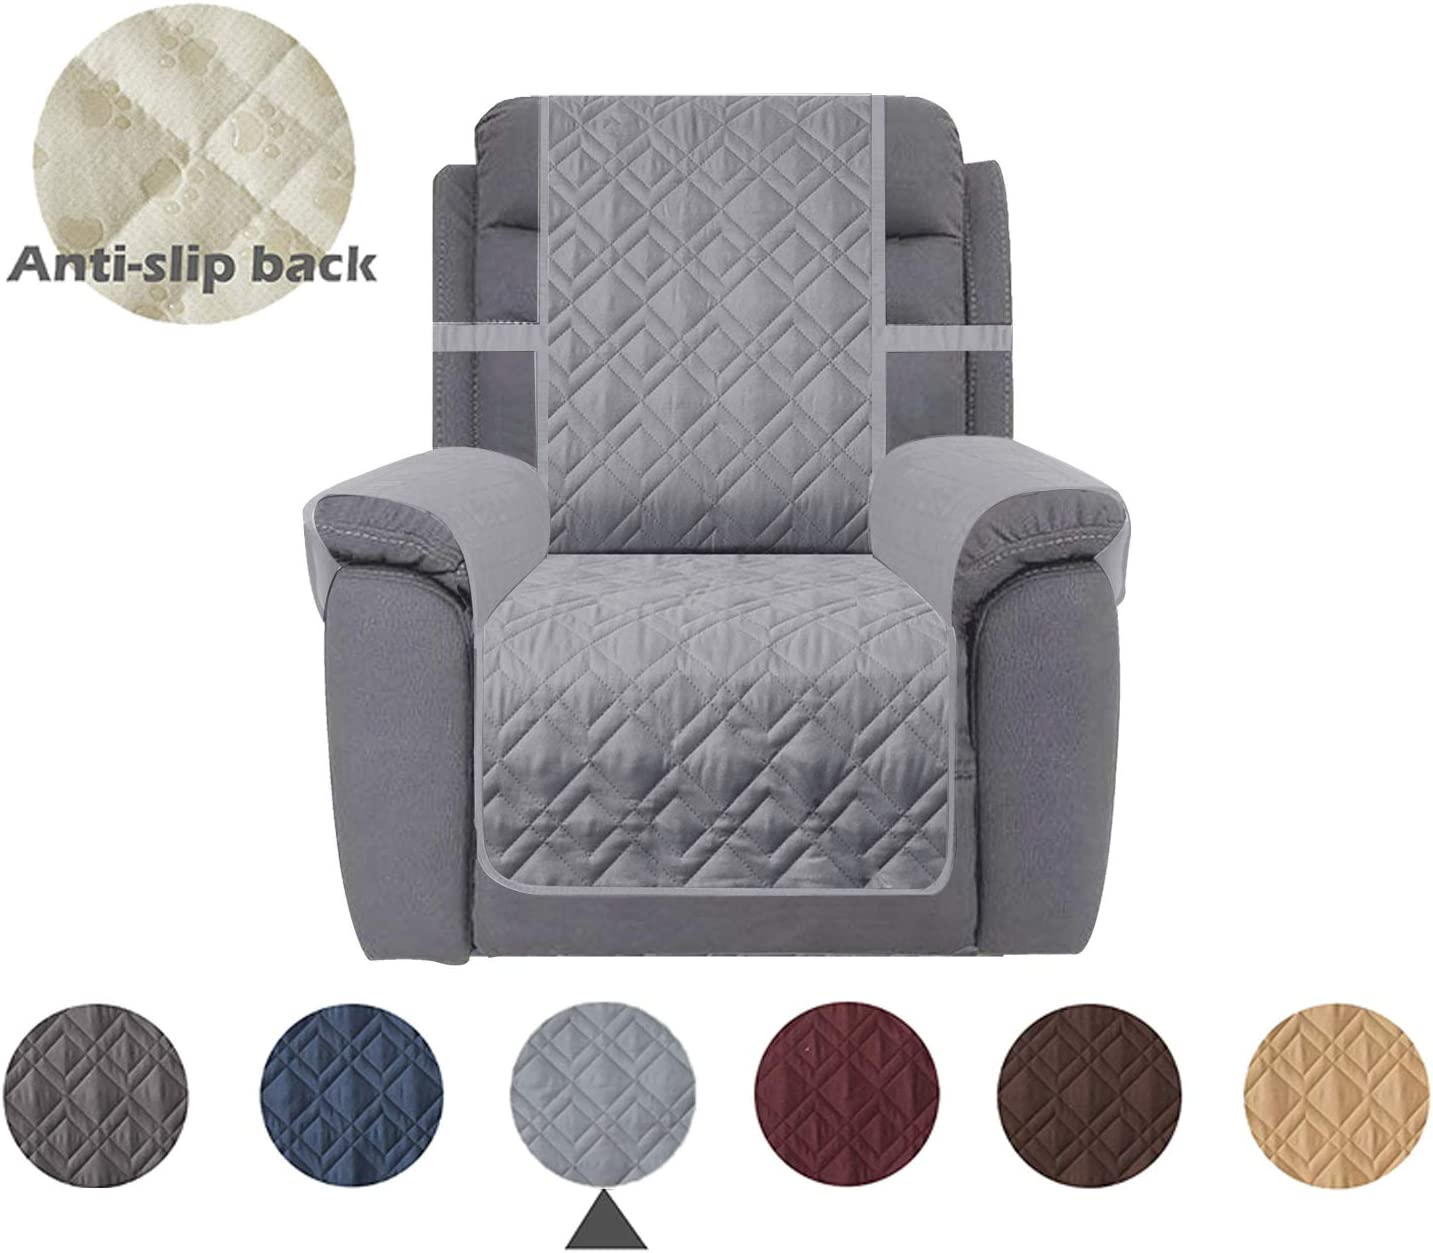 23, Sand Dog Chair Cover Furniture Protector Ideal Recliner Slipcovers for Pets and Kids Ameritex Waterproof Nonslip Recliner Cover Stay in Place